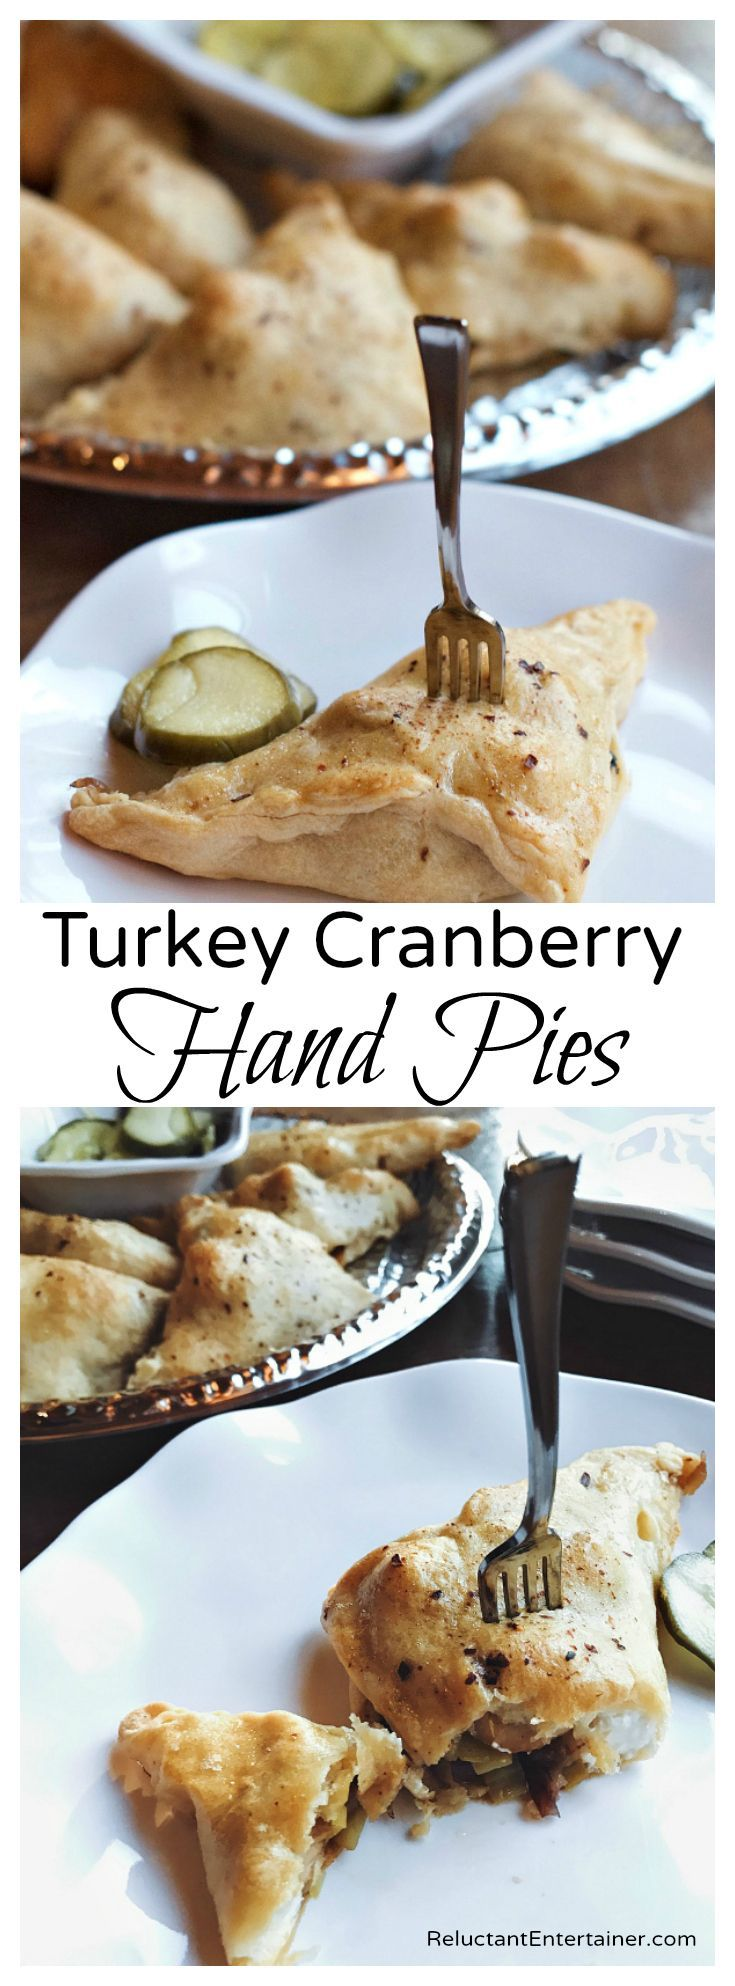 Turkey Cranberry Hand Pies with leftover turkey and cranberries